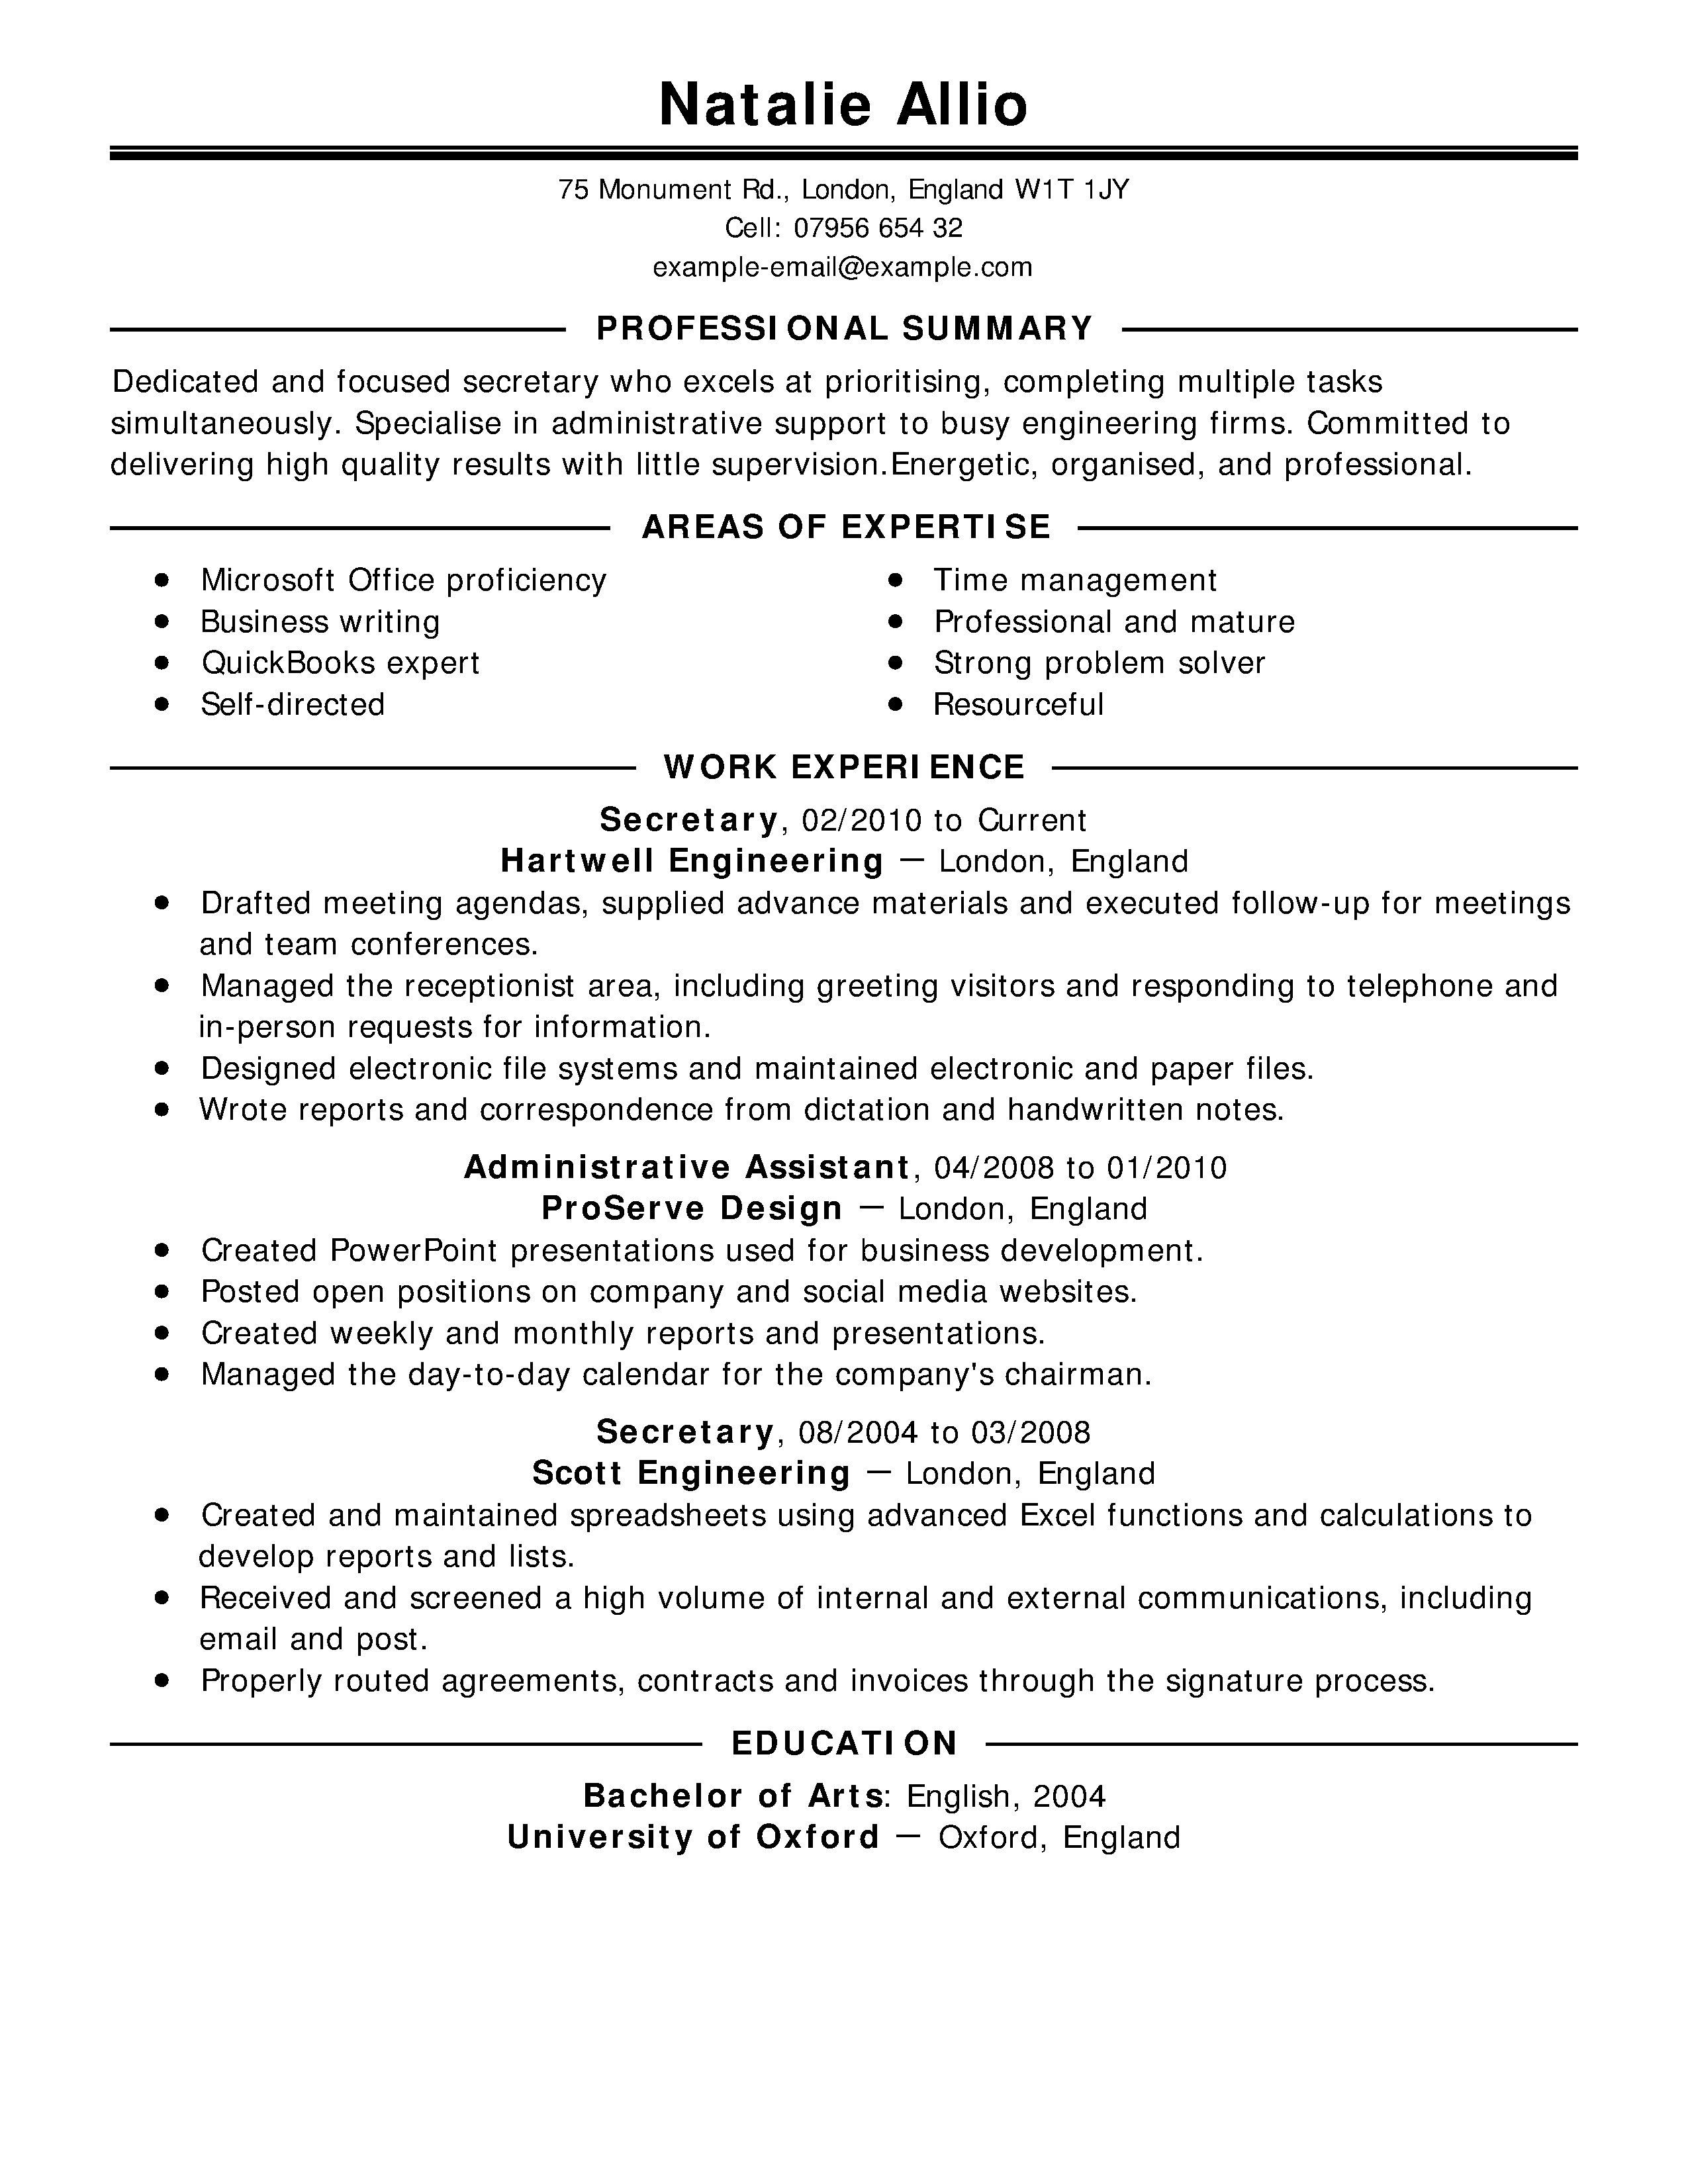 example of resume to apply job for accountant